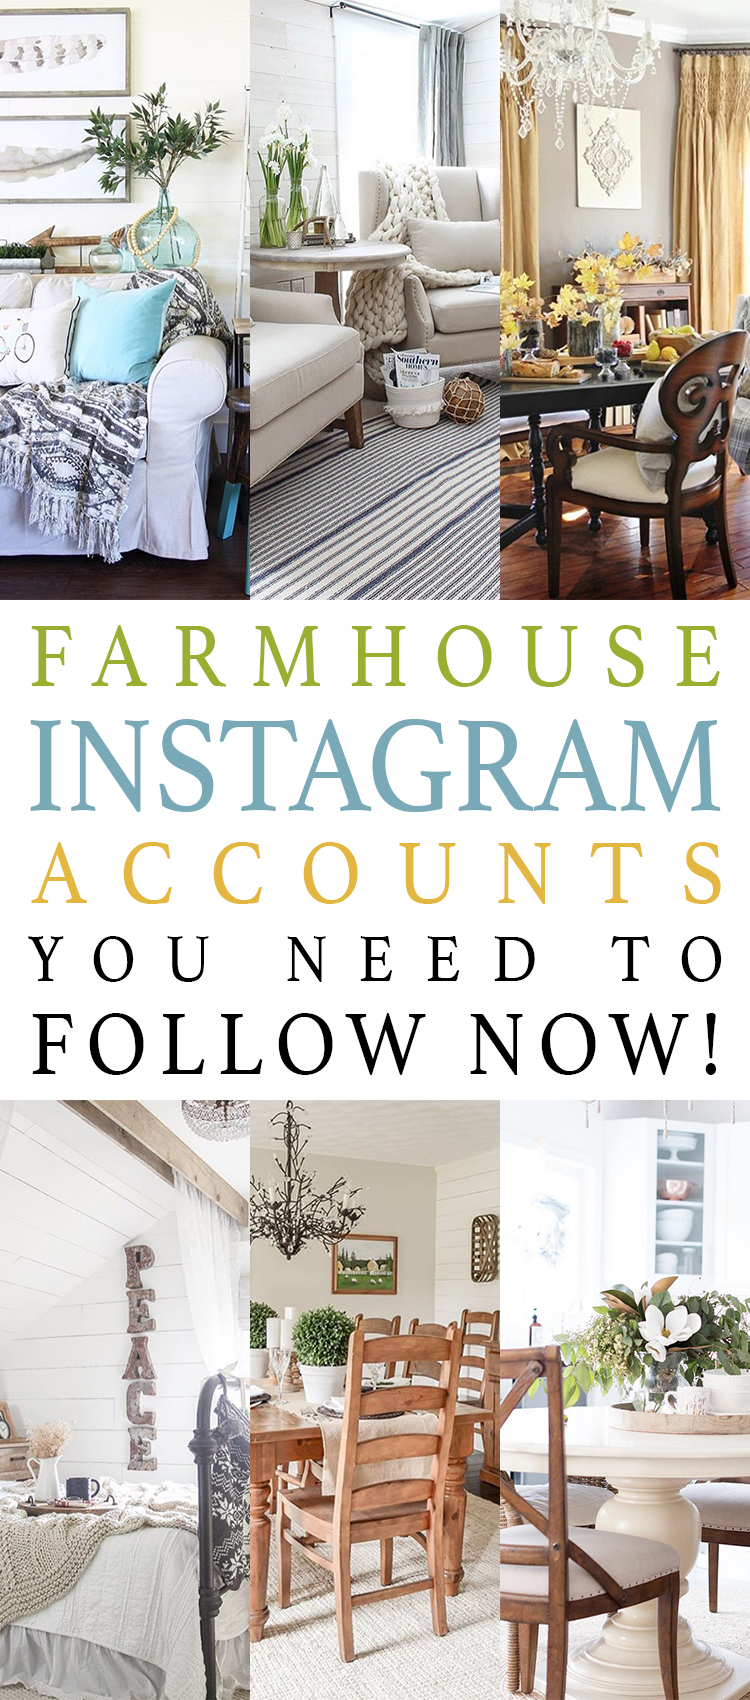 Farmhouse Instagram Accounts You Need to Follow NOW